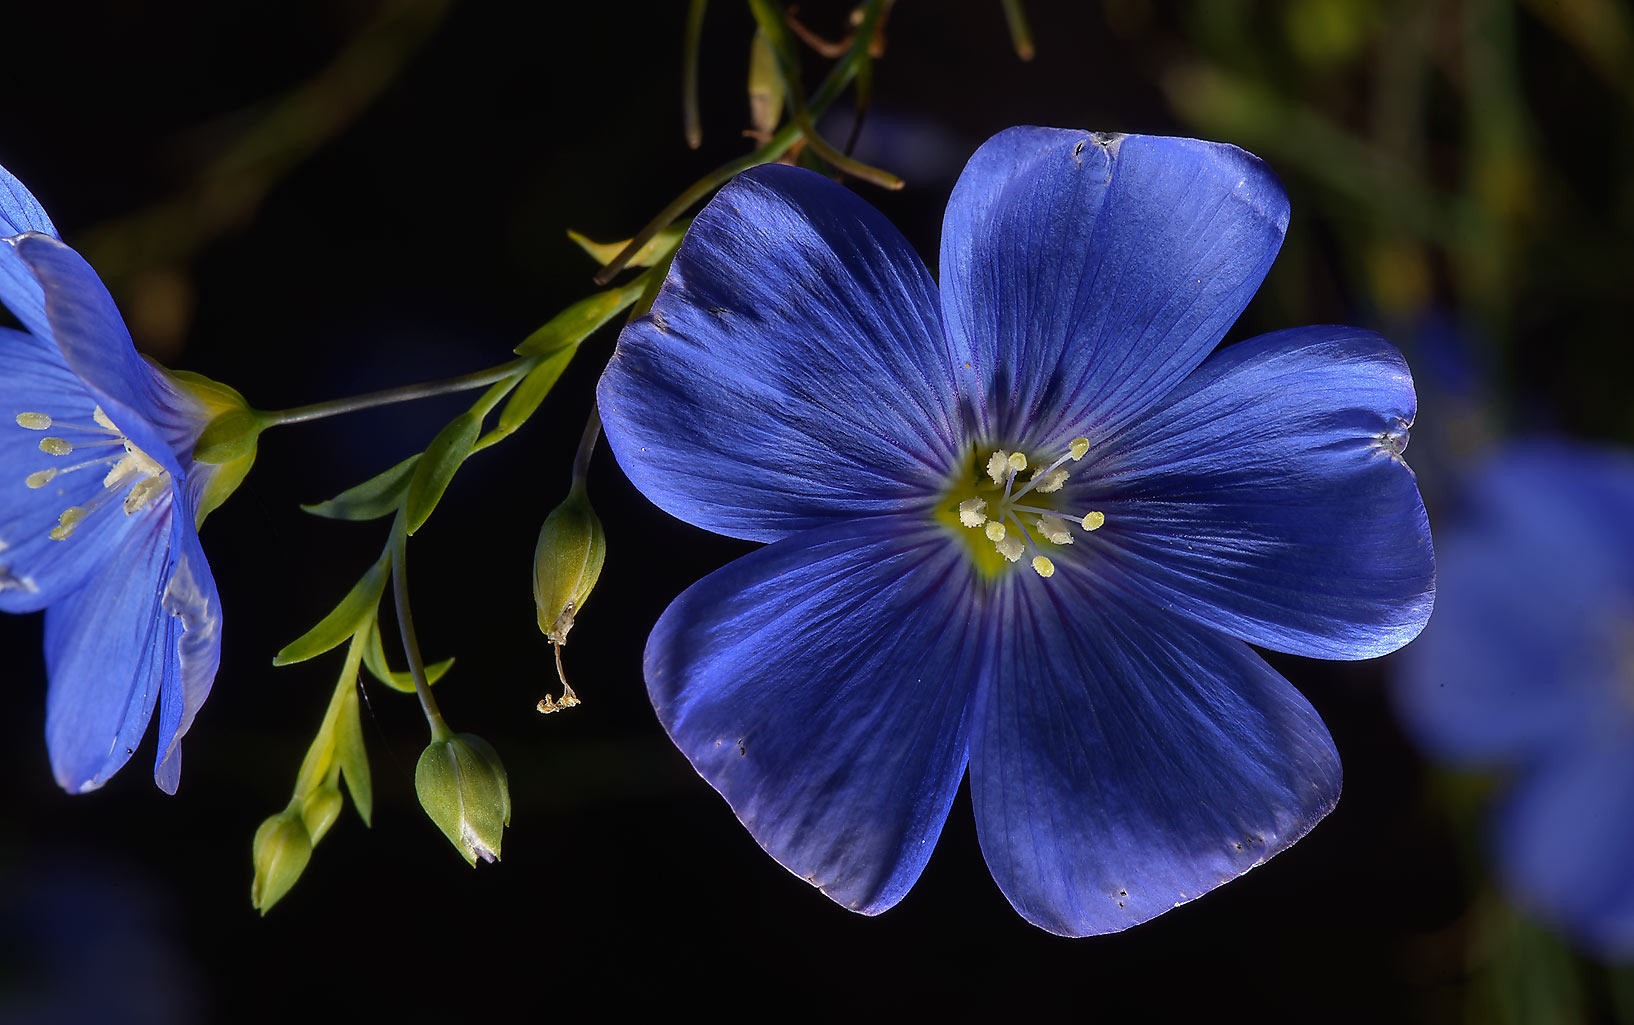 Blue linum (flax) in Botanic Gardens of Komarov Botanical Institute. St.Petersburg, Russia